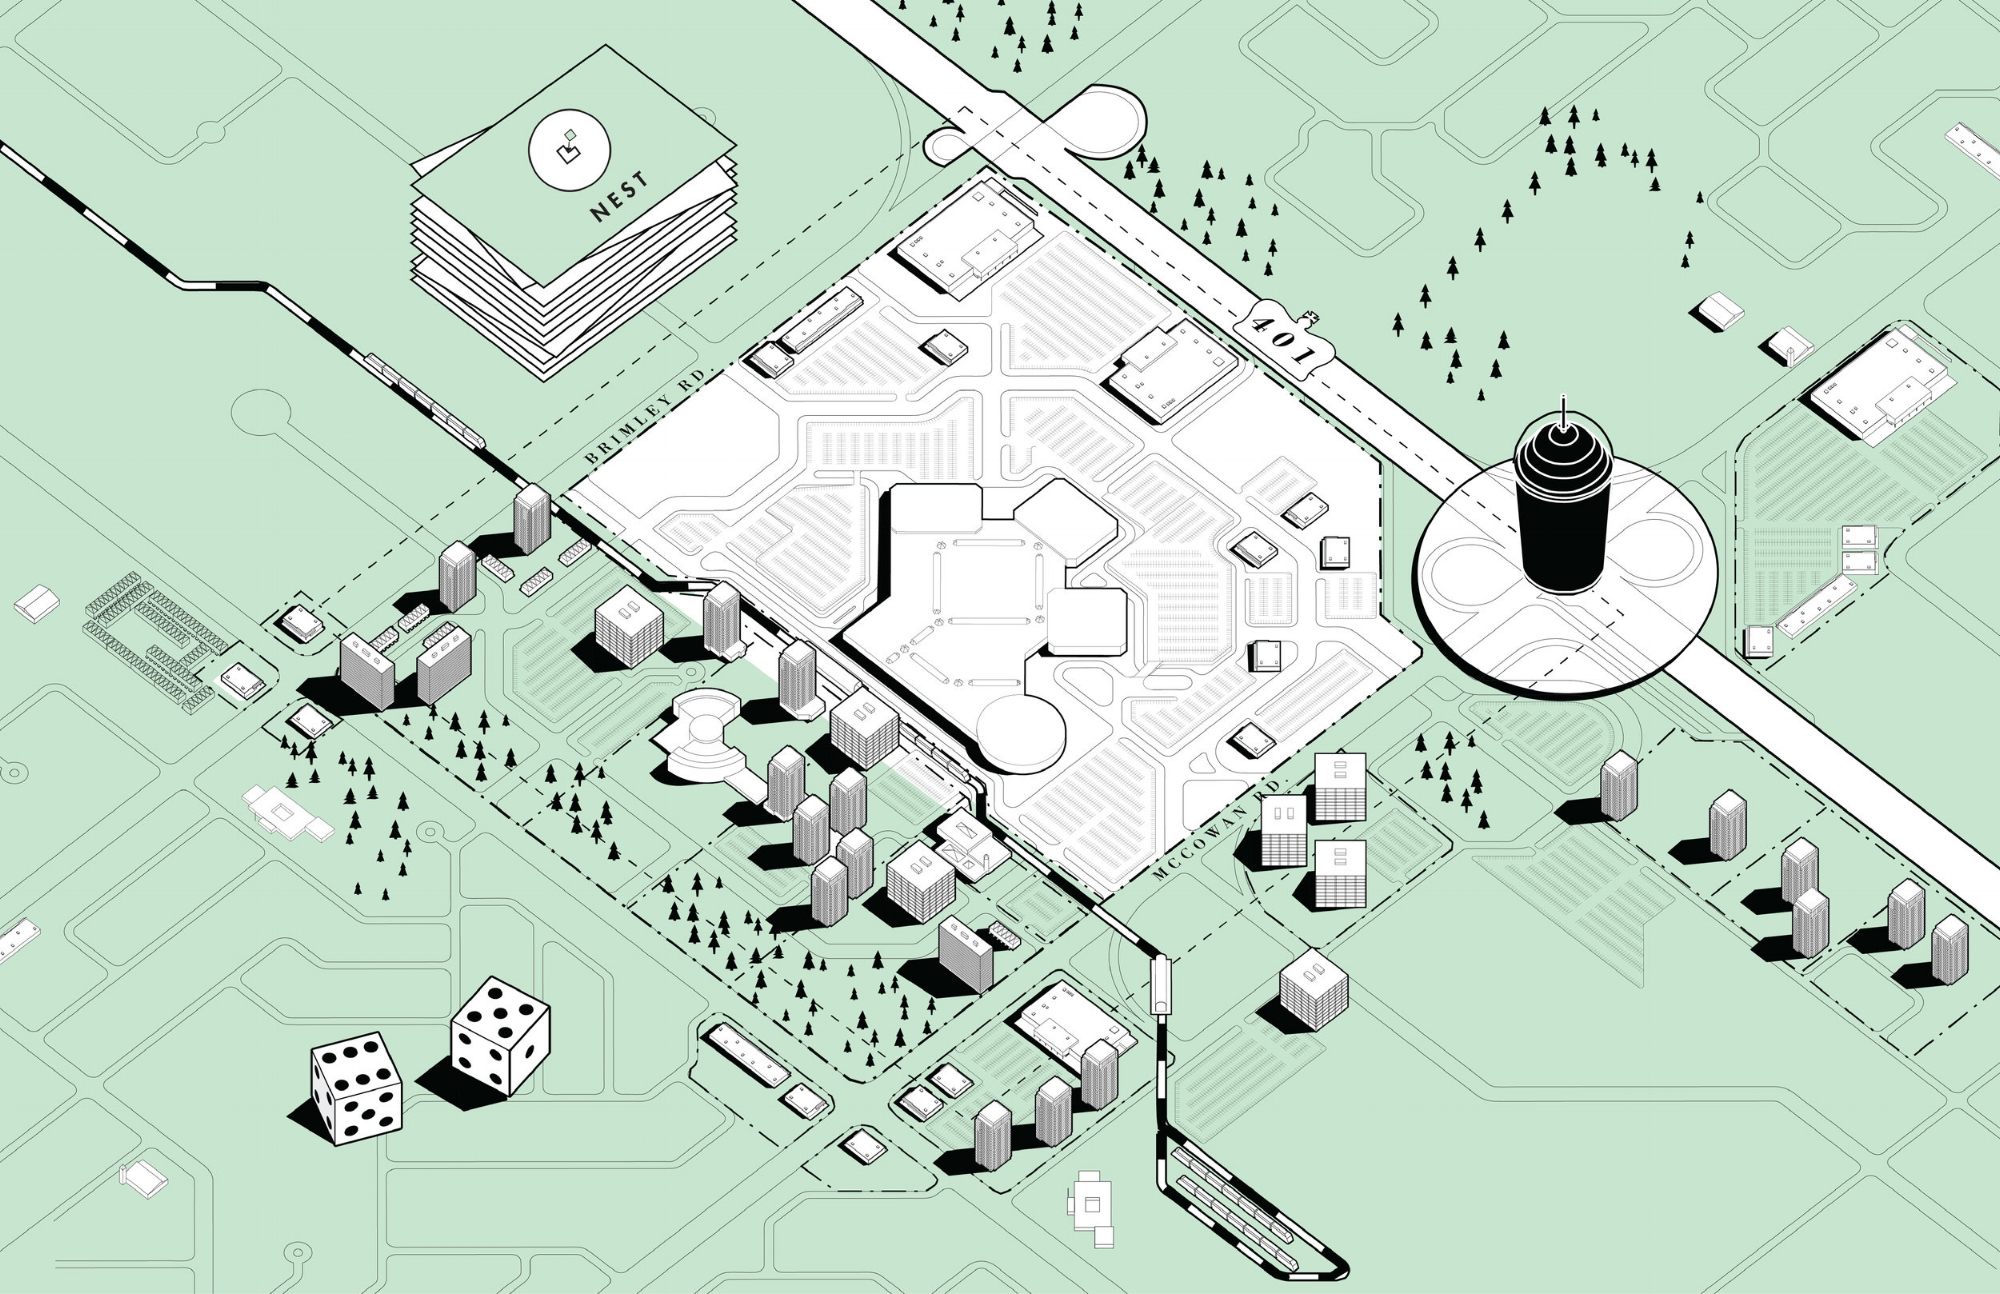 Image 13 / Scarborough—Existing Agglomeration as Played in Mallopoly, 2015. Illustration by Emma Dunn, Salome Nikuradze, Michael Piper, Zoe Renaud